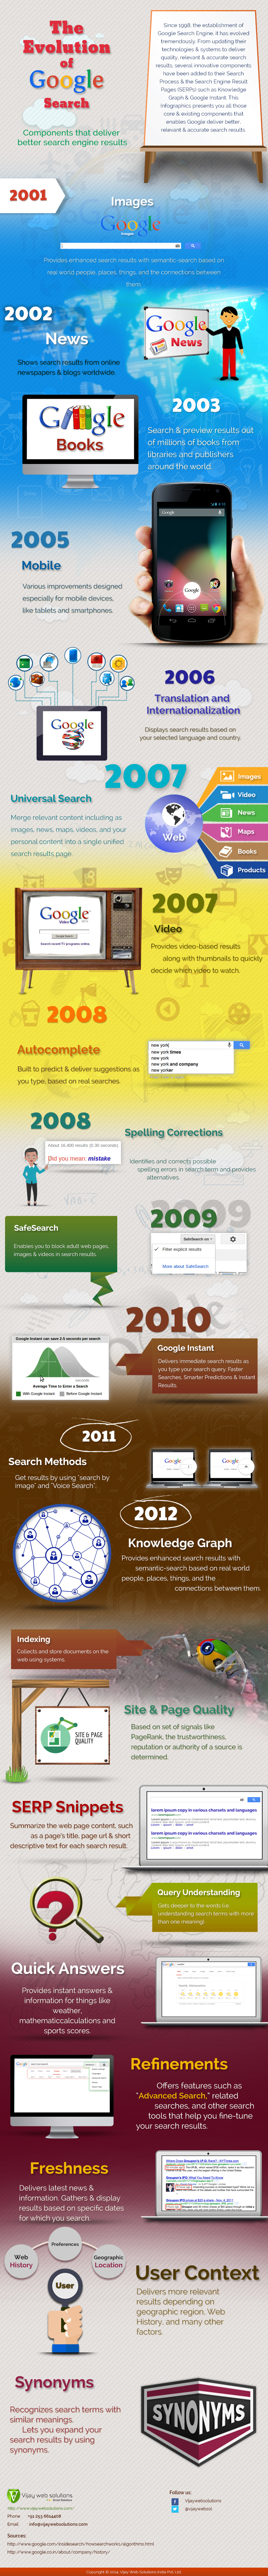 The Evolution of Google Search